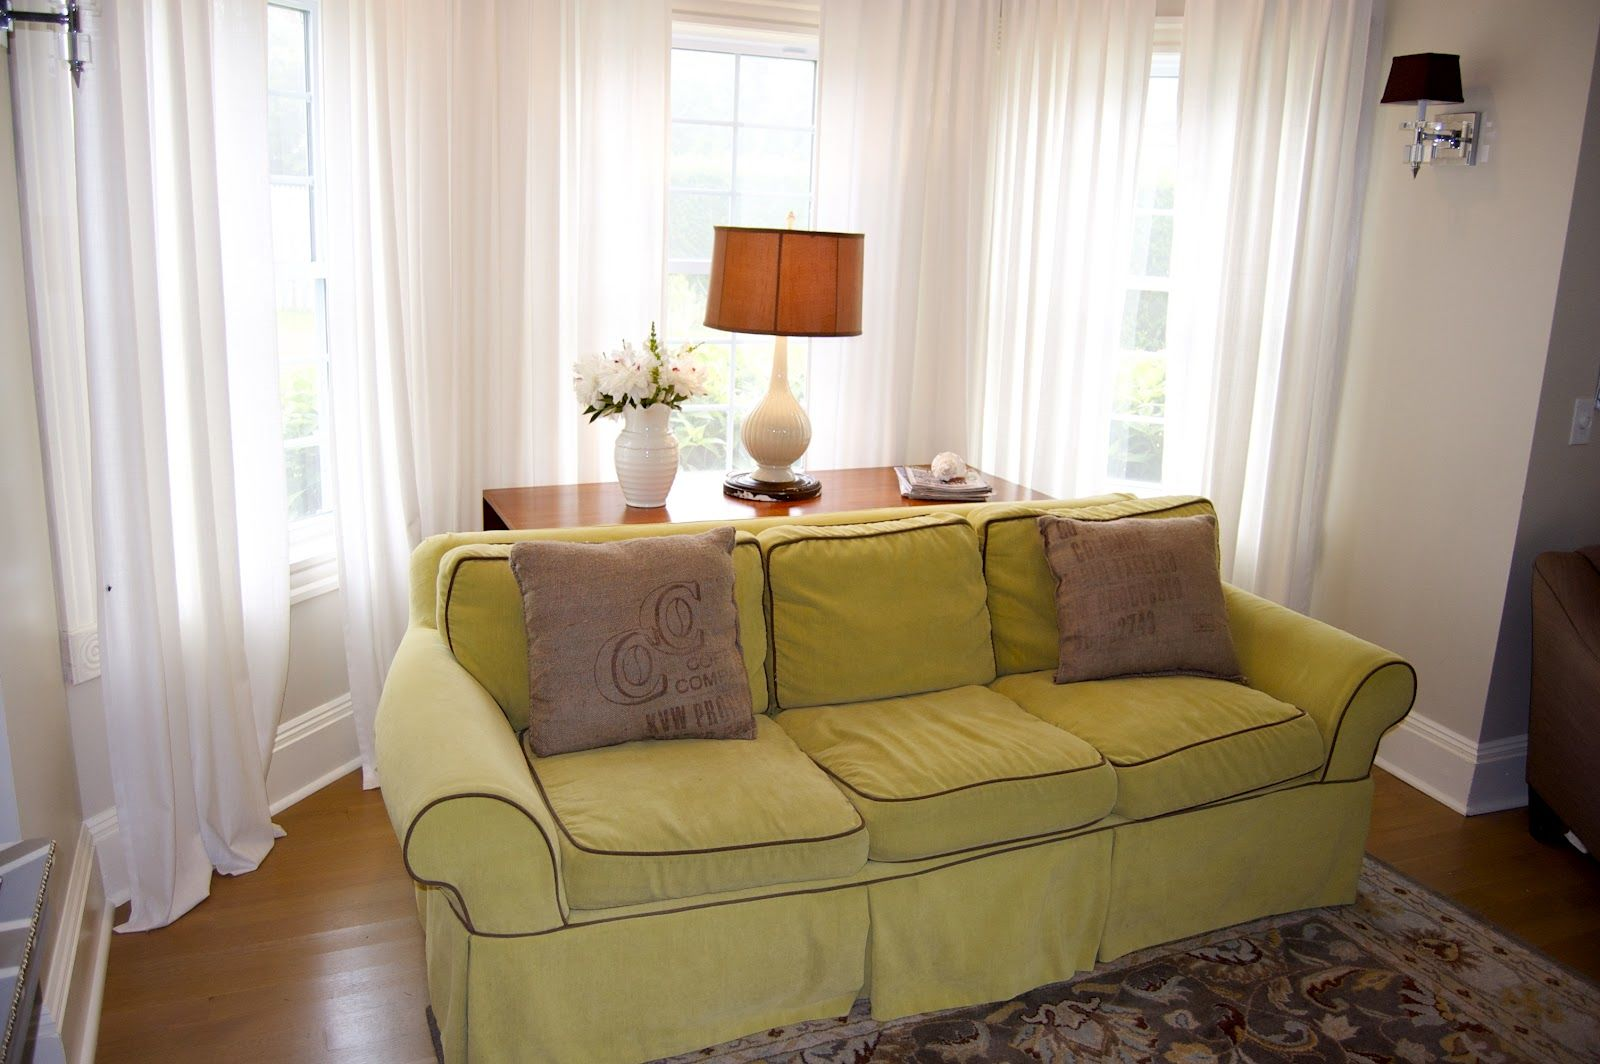 luxury bay window sofa concept-Contemporary Bay Window sofa Decoration